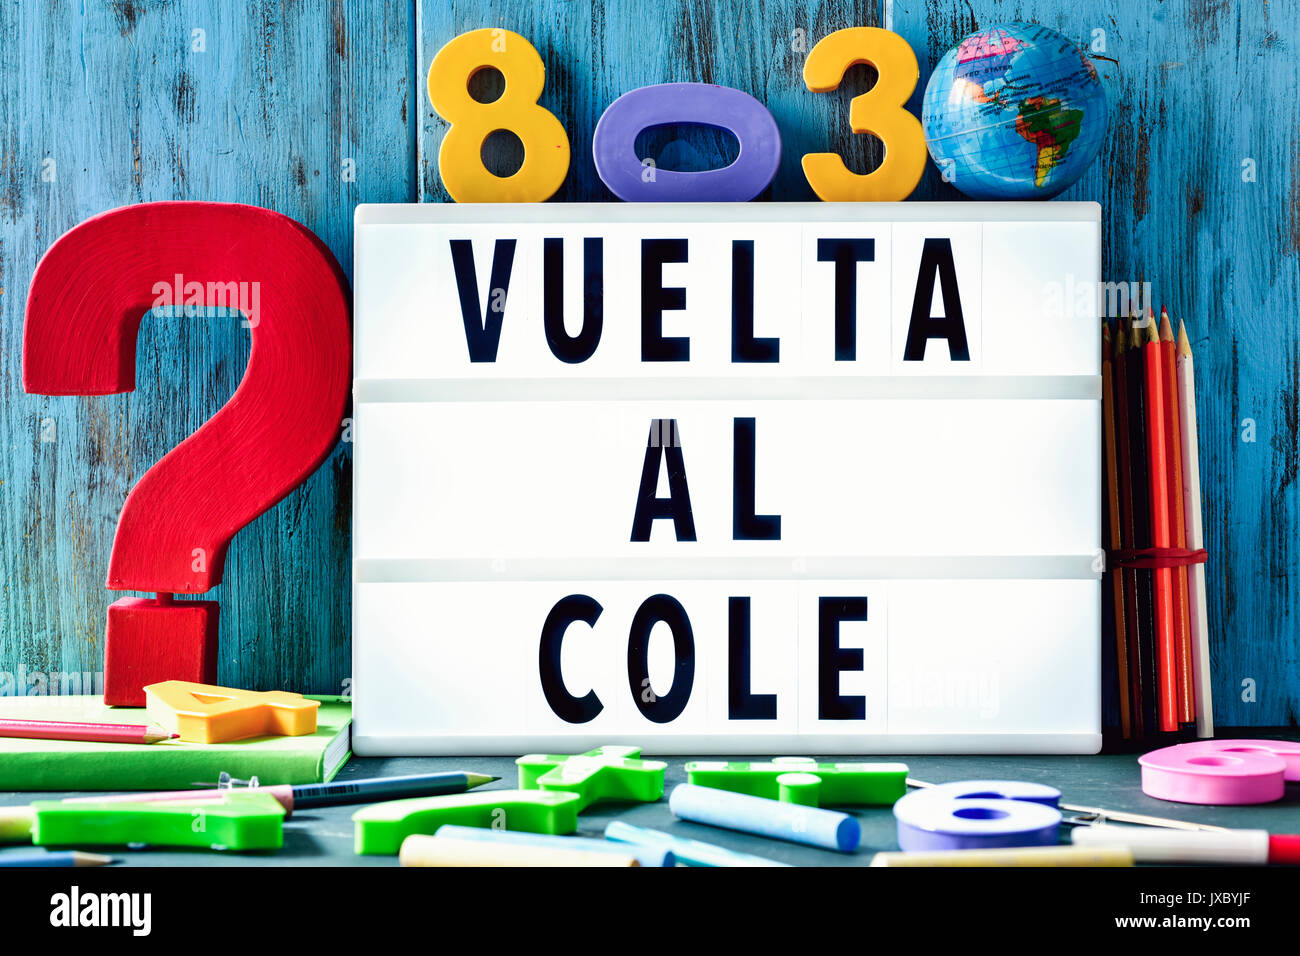 the text vuelta al cole, back to school in spanish, in a lightbox placed against a rustic wooden background, surrounded by three-dimensional numbers a - Stock Image